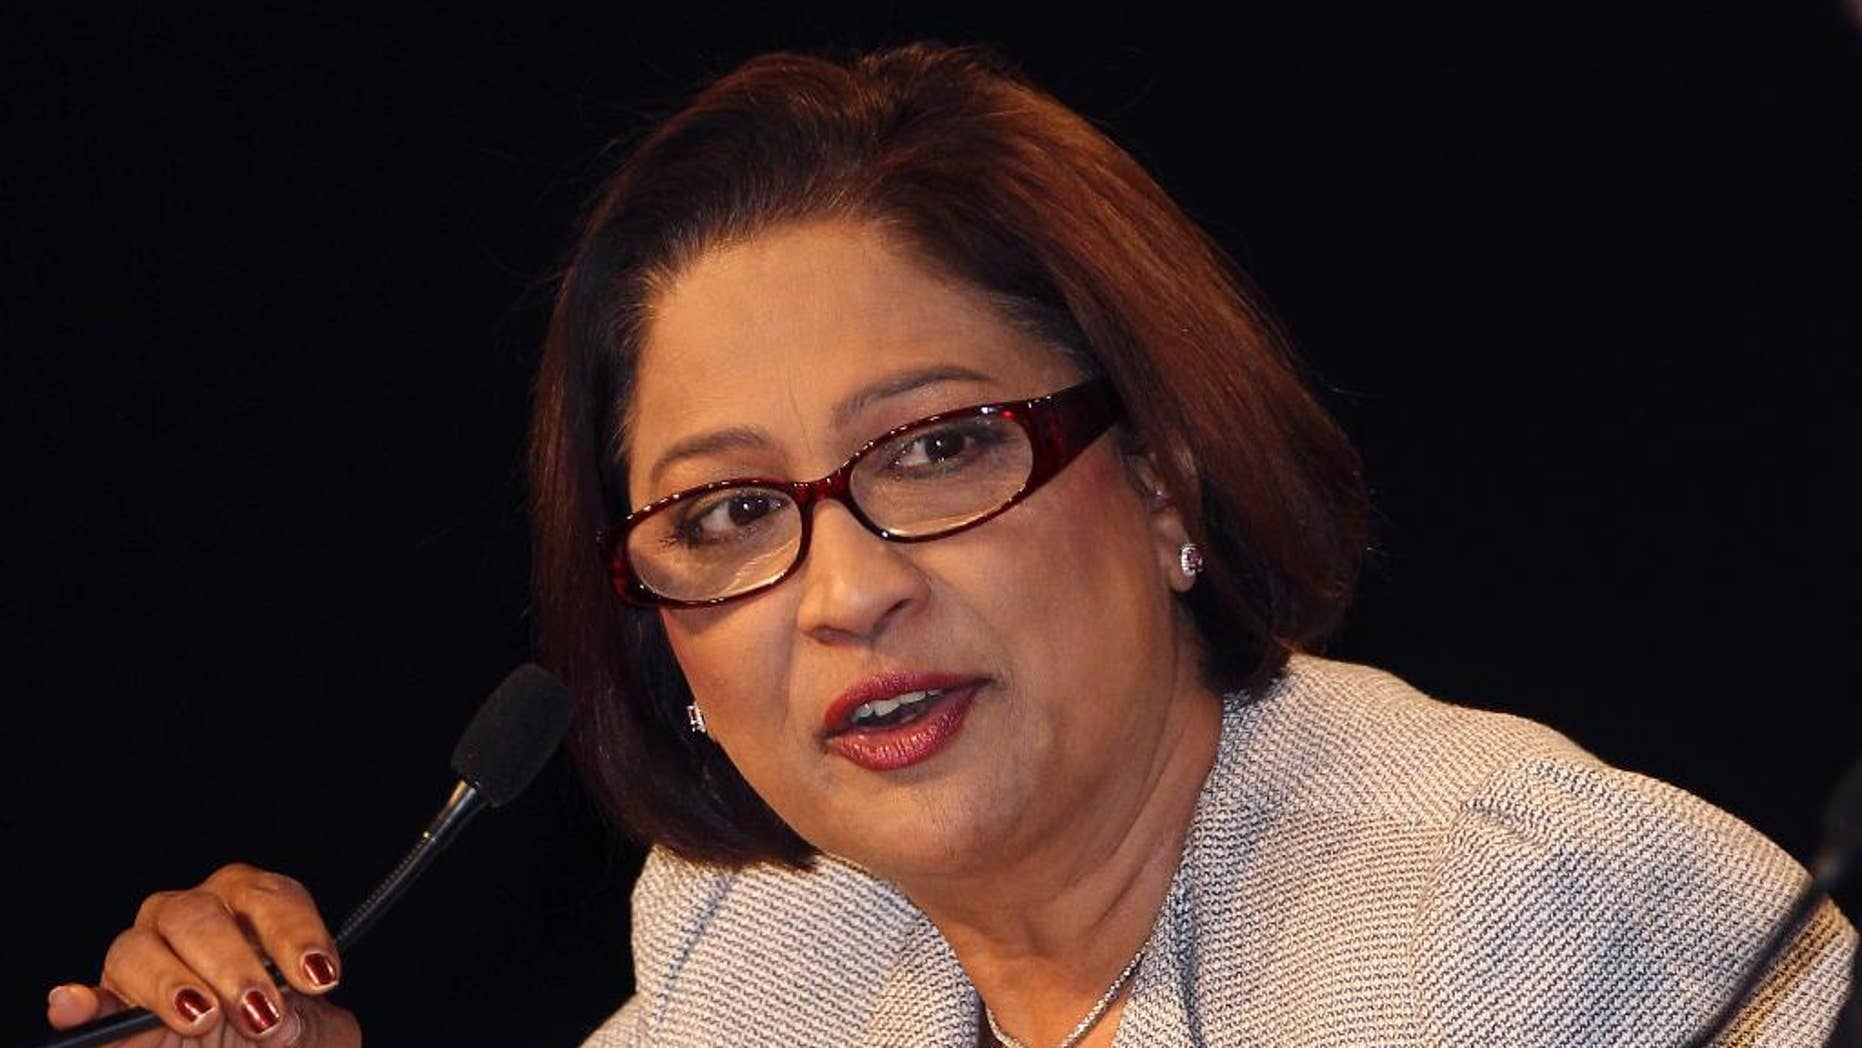 FILE - In this Oct. 30, 2011 file photo, Prime Minister of Trinidad and Tobago Kamla Persad-Bissessar speaks during a press conference at the end of the Commonwealth Heads Of Government Meeting (CHOGM) in Perth, Australia. Persad-Bissessar, the twin-island's first female prime minister, faces a tough re-election on Monday, Sept. 7, 2015 amid complaints that her government has tolerated corruption and failed to curb violent crime. (AP Photo/Rob Griffith, File)